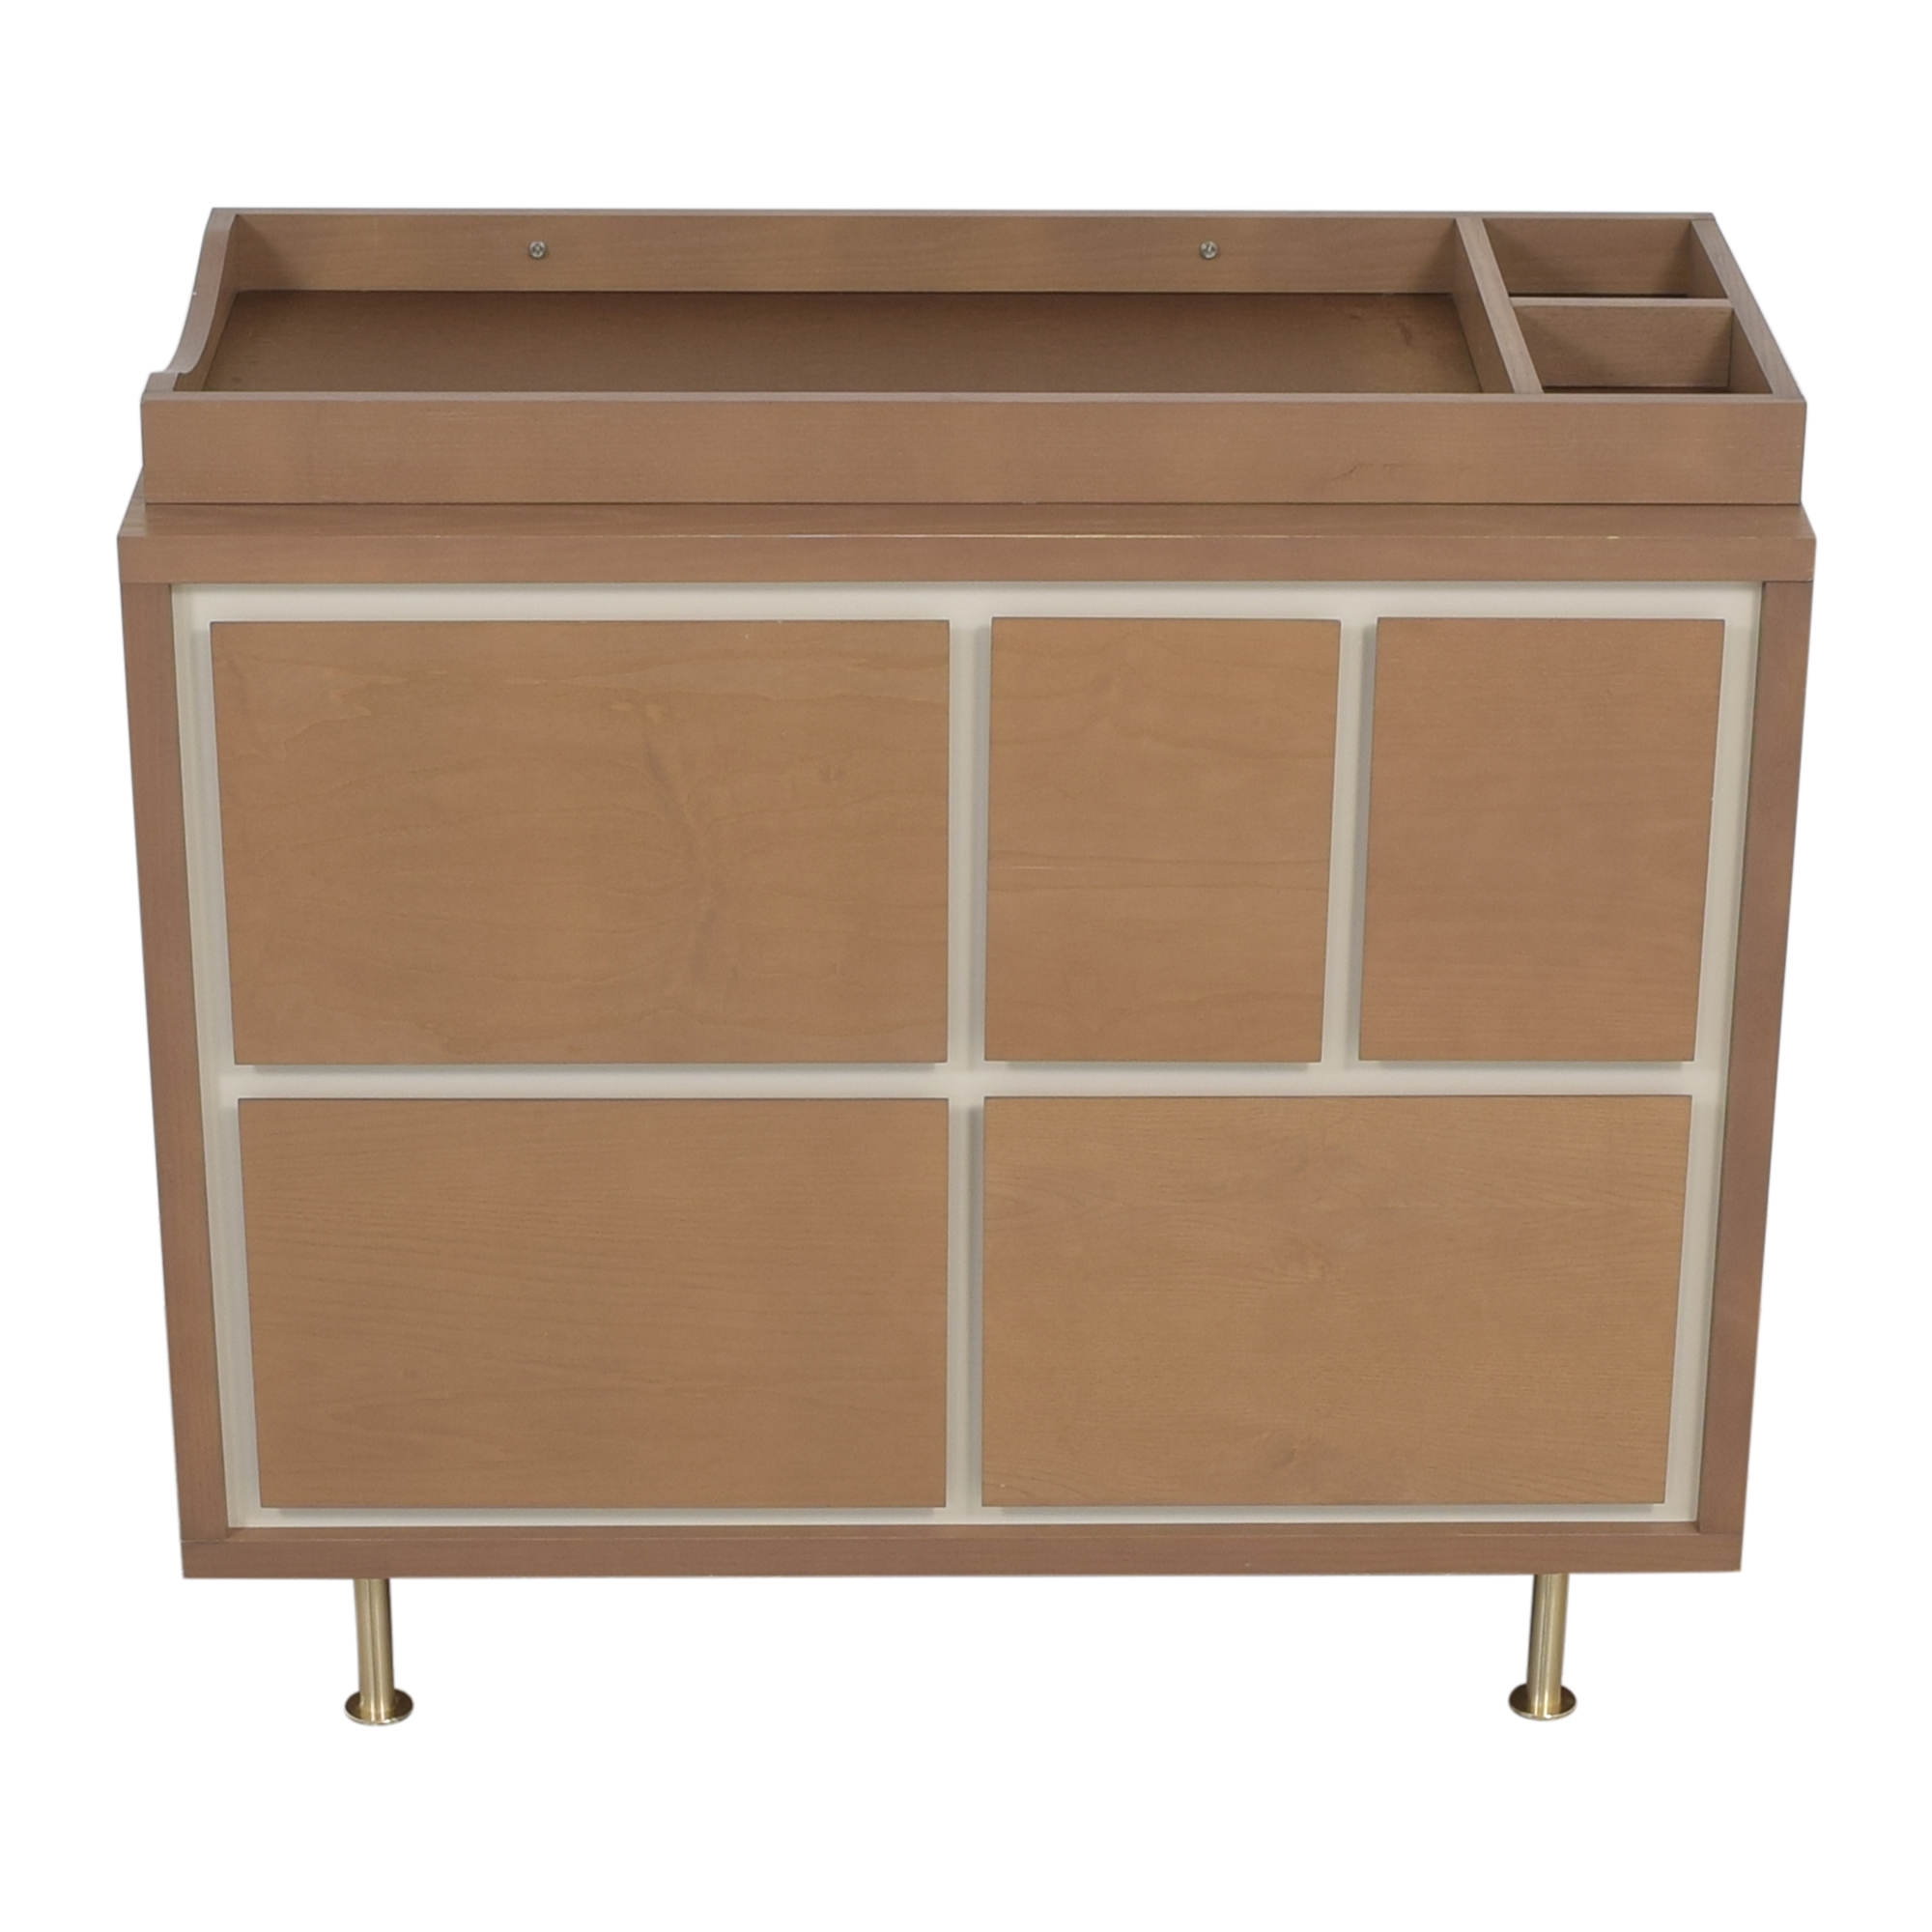 Nursery Works Nursery Works Novella Five Drawer Dresser with Changing Table Storage